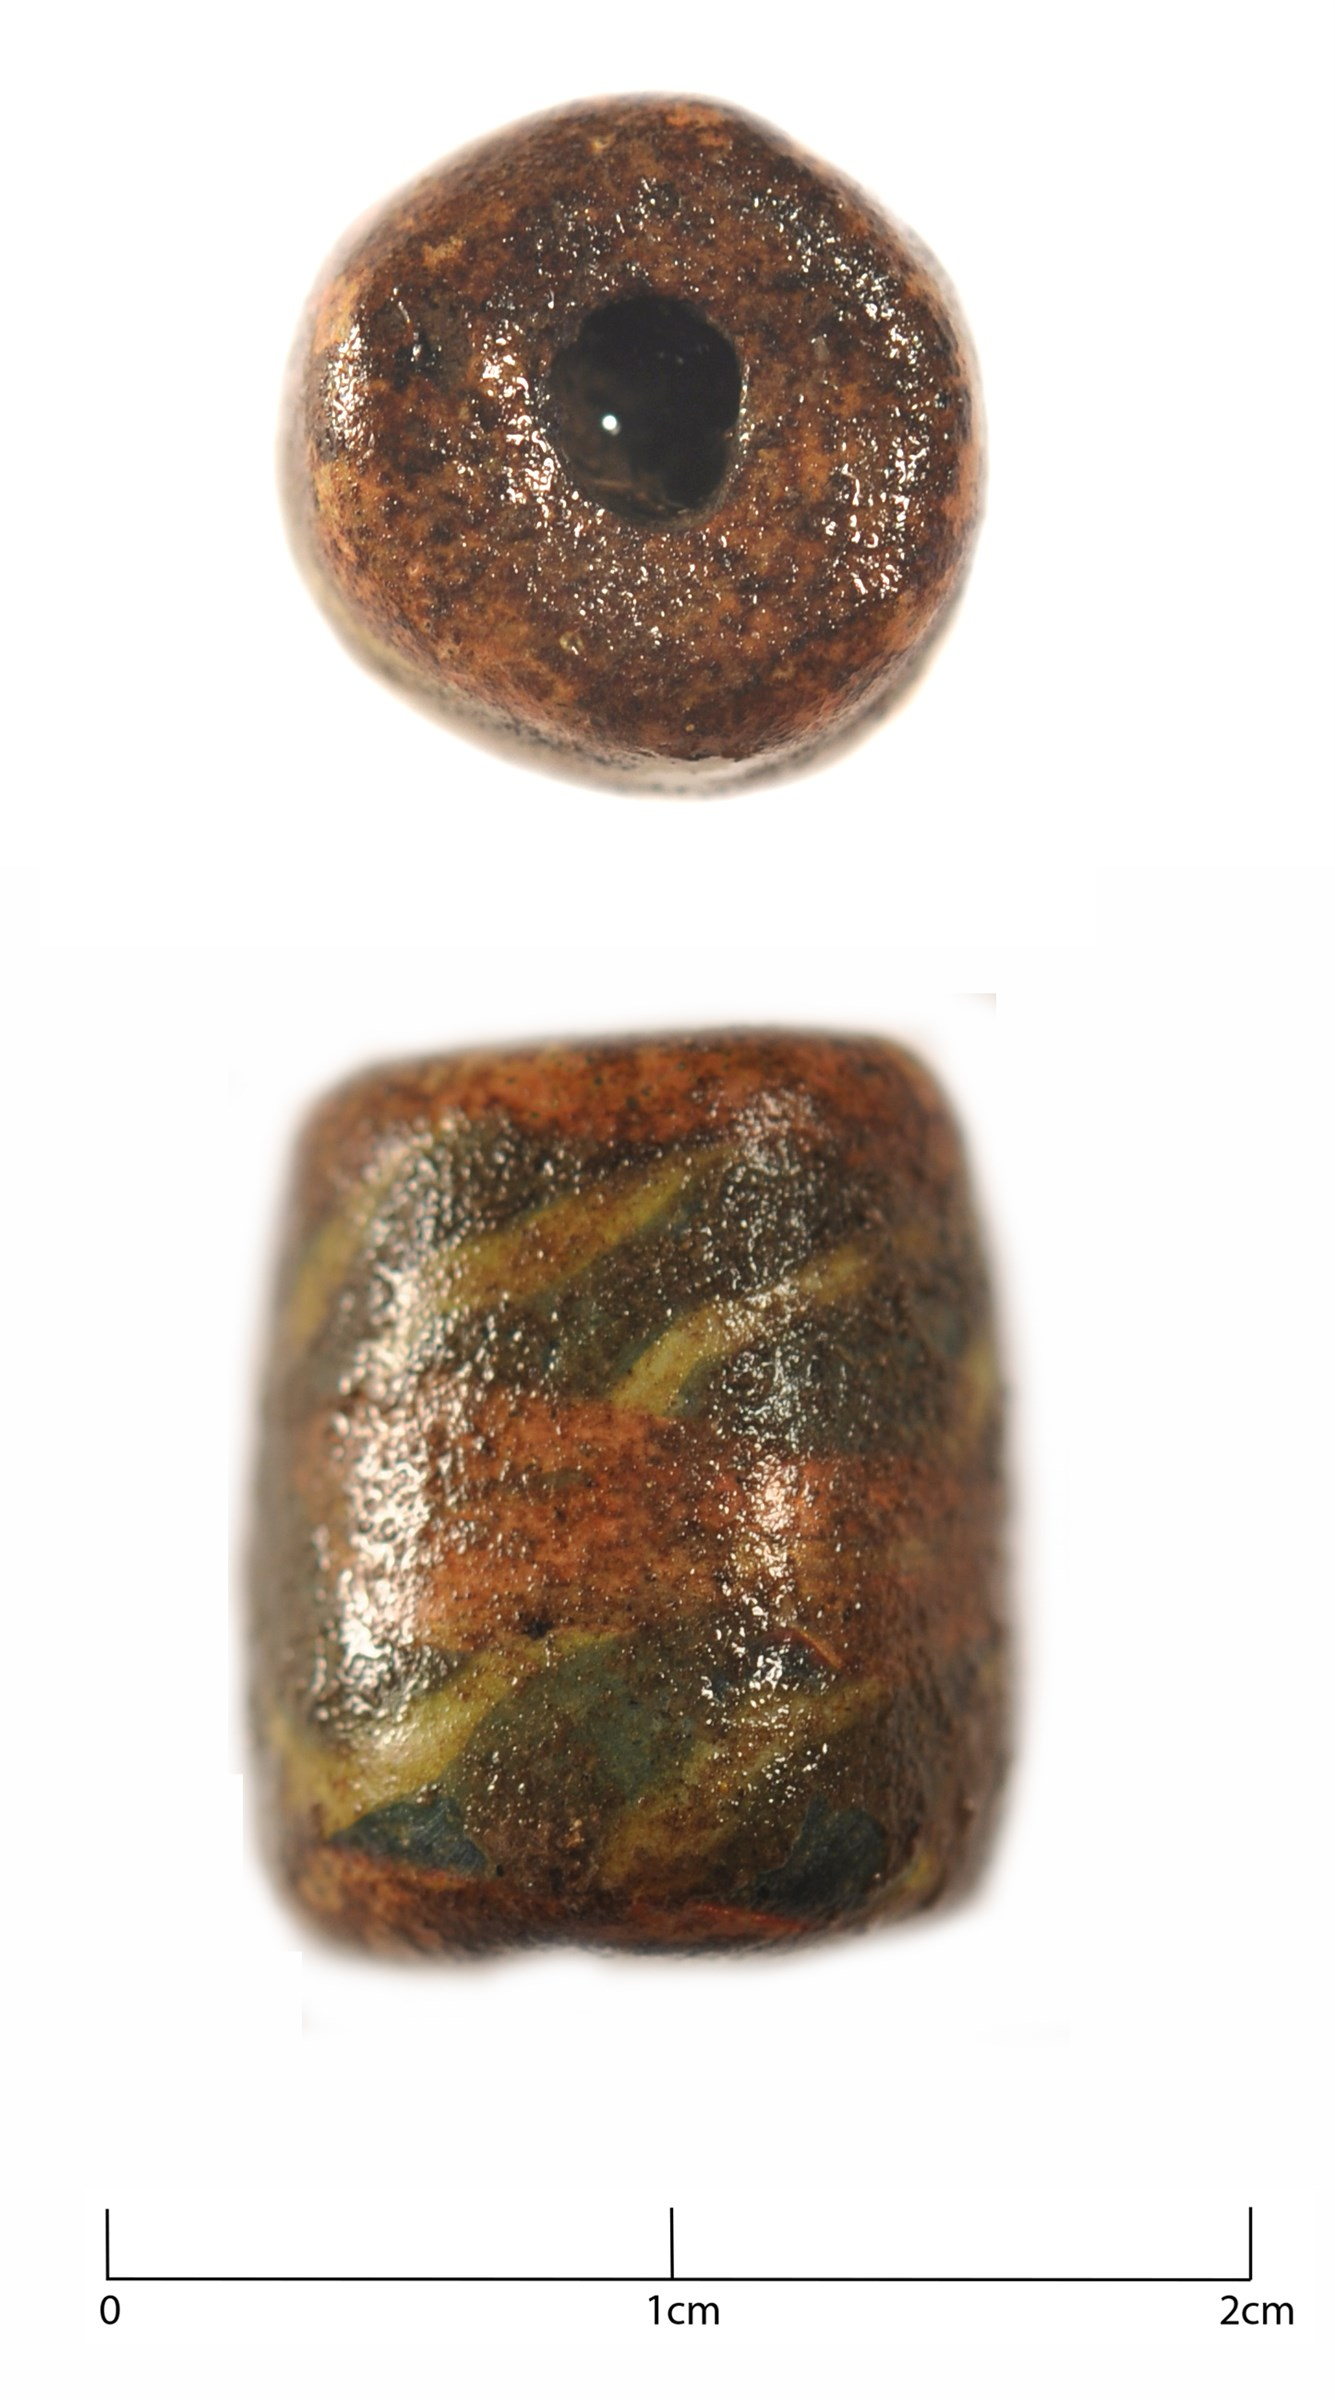 Anglo-Saxon glass bead from the excavations at Kentford